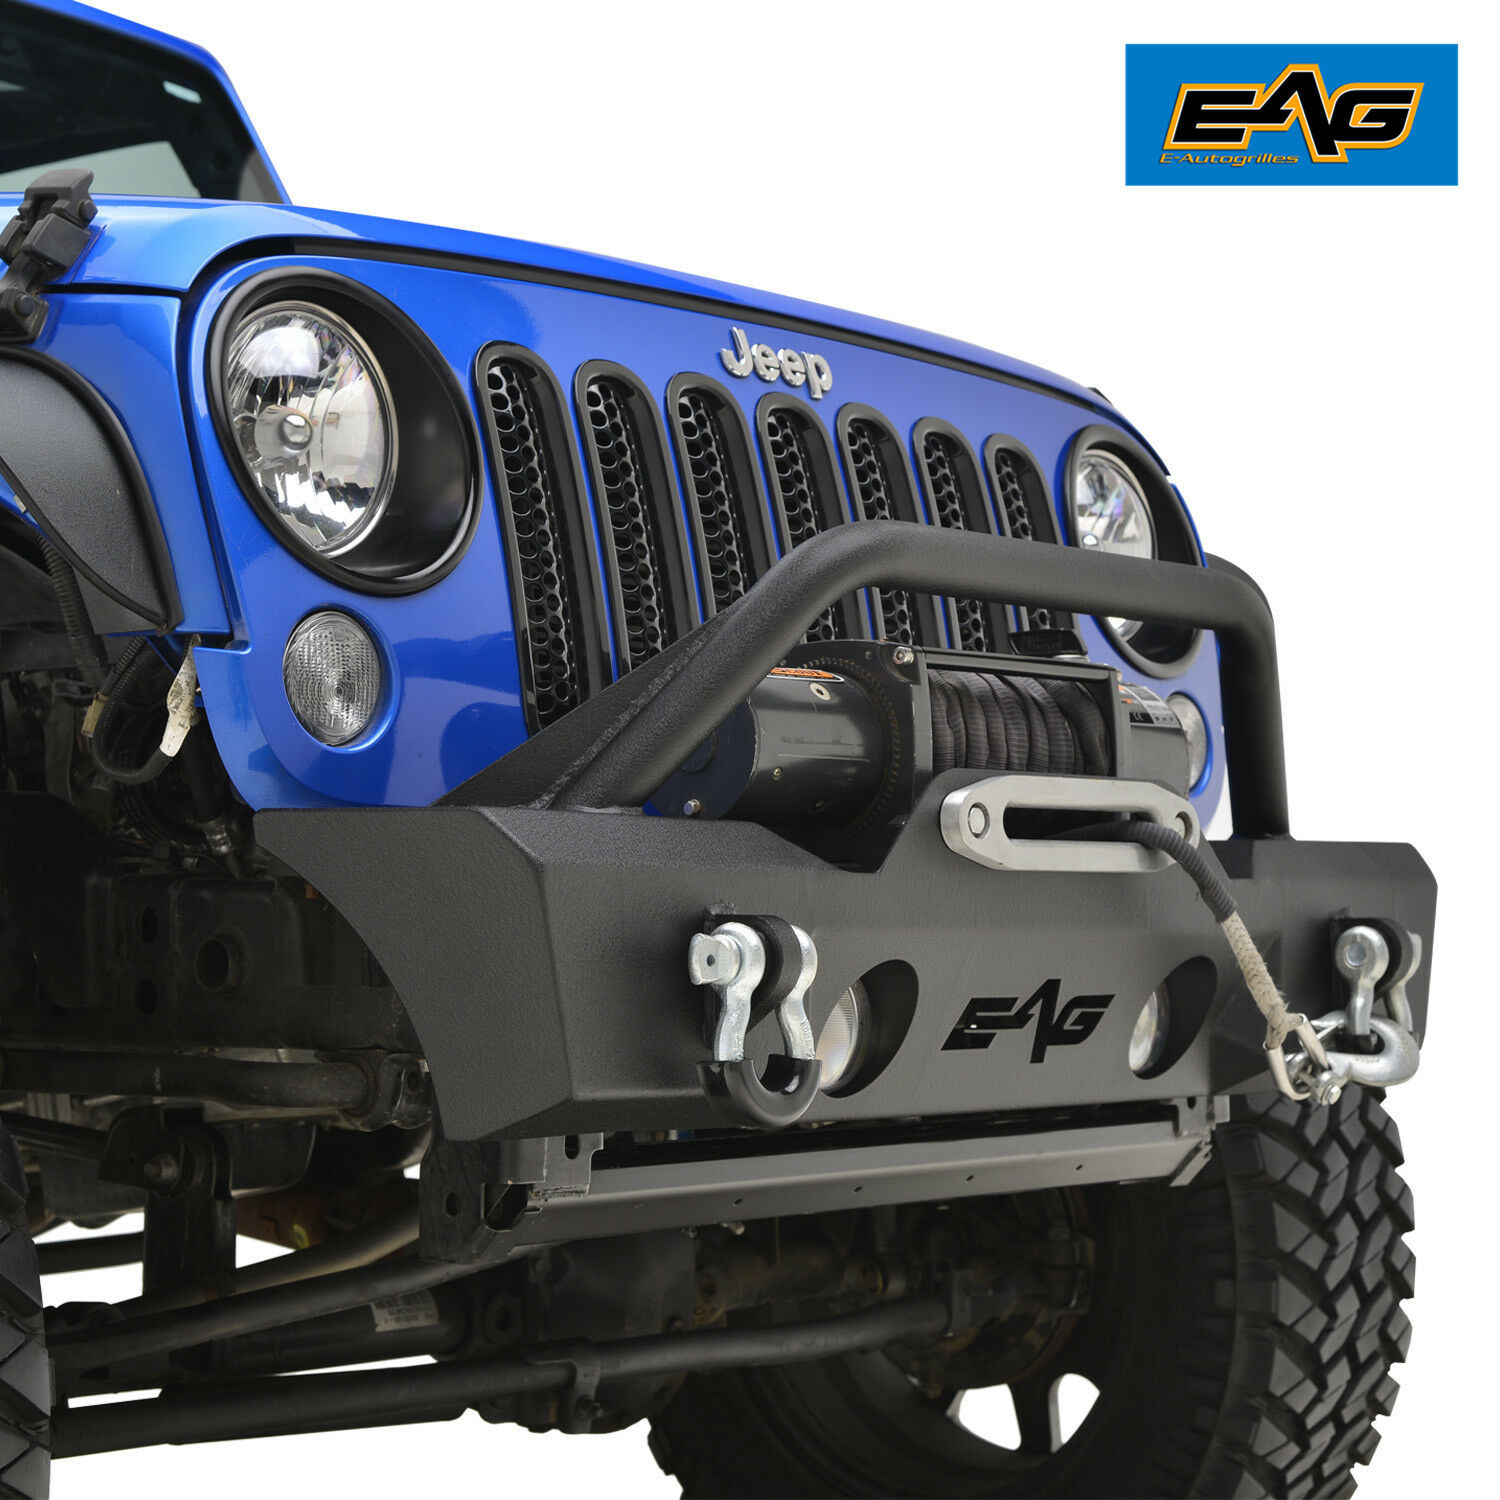 EAG 07 18 Jeep Wrangler JK Stubby Front Bumper BLK With Fog Light Hole U0026 1  Of 10FREE Shipping See More